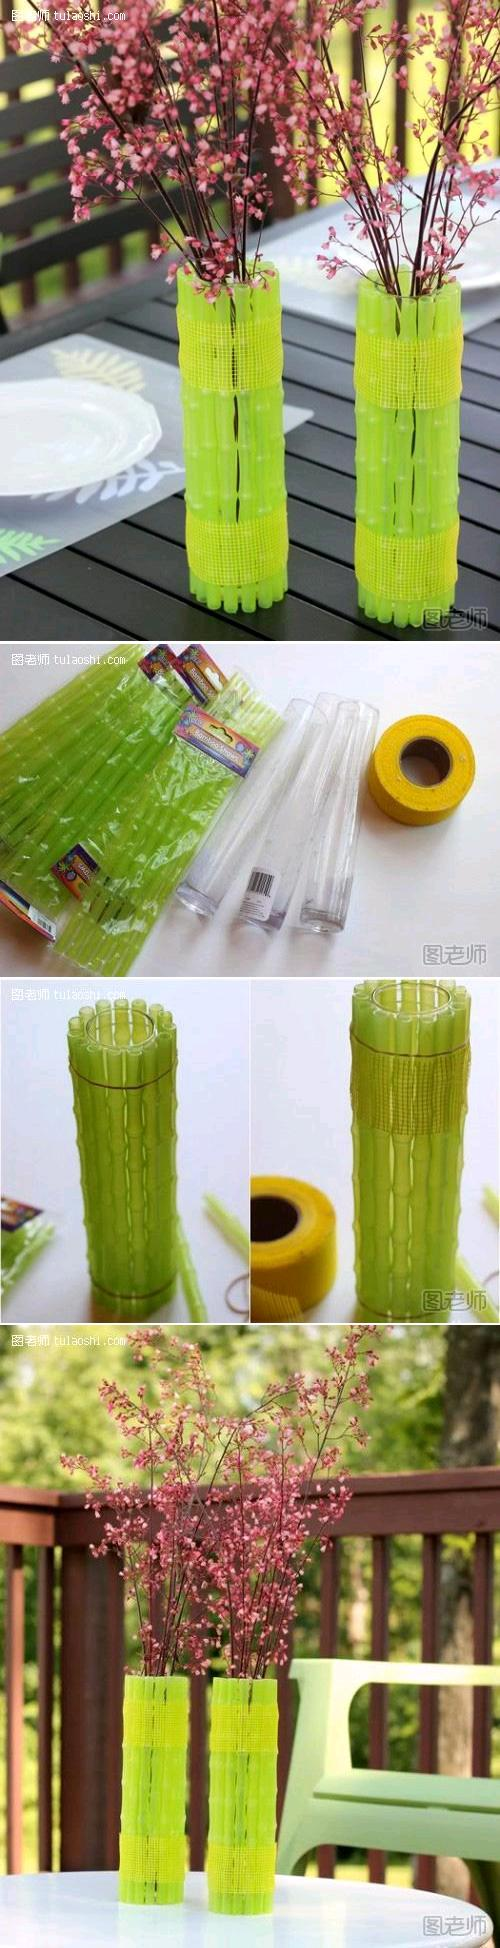 Make a Neon Vase From Green Bamboo